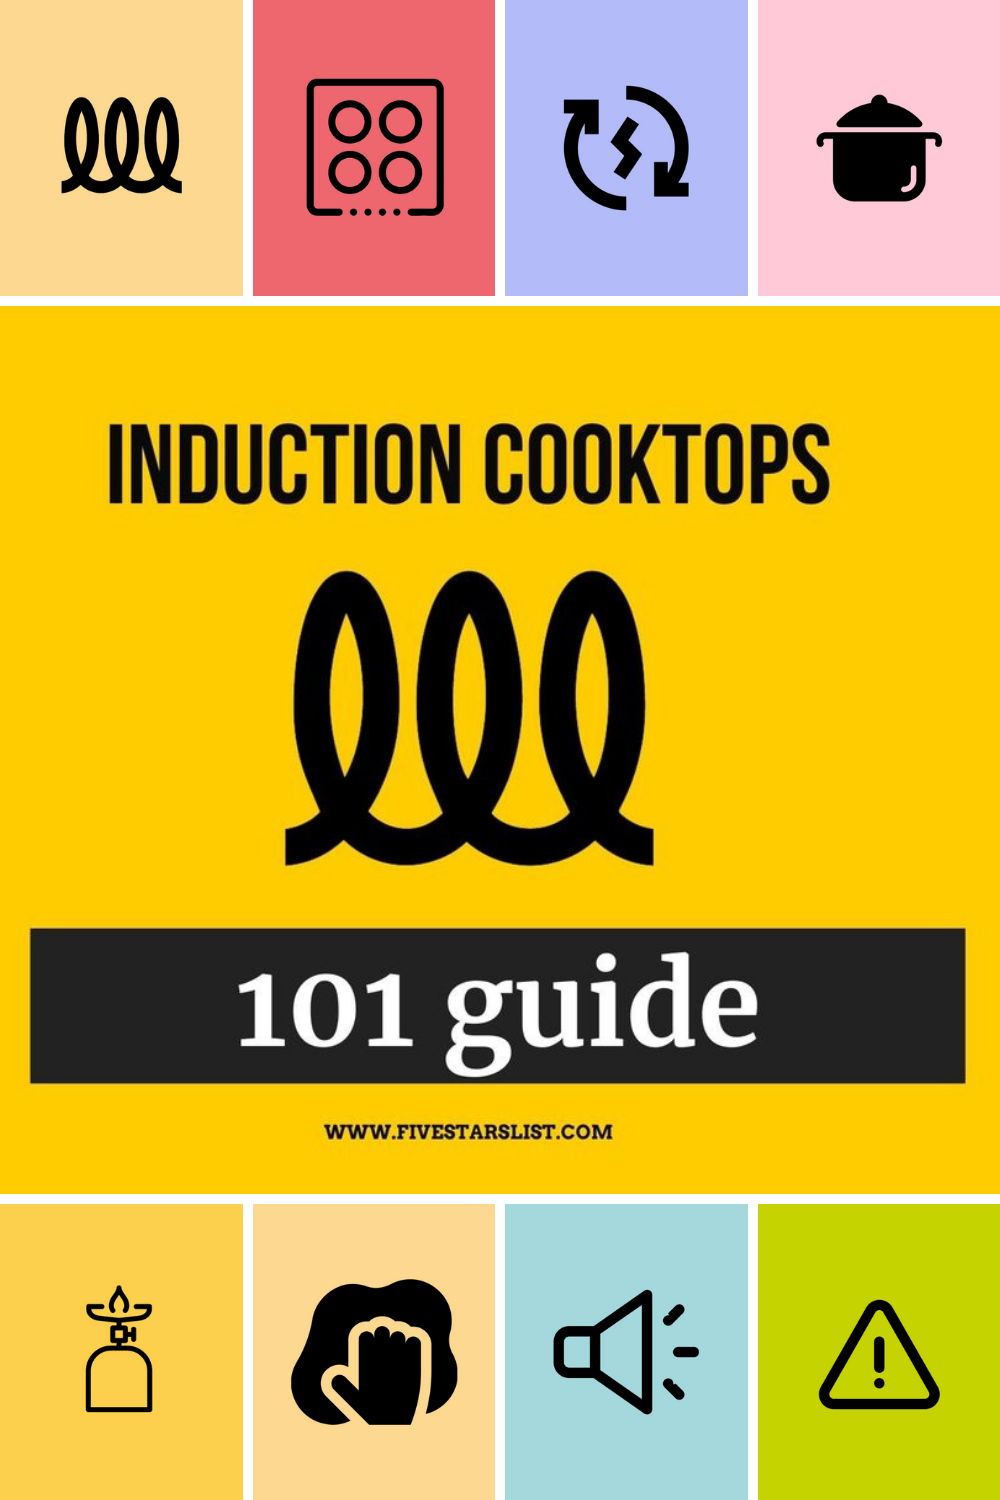 Induction Cooktops - 101 Guide